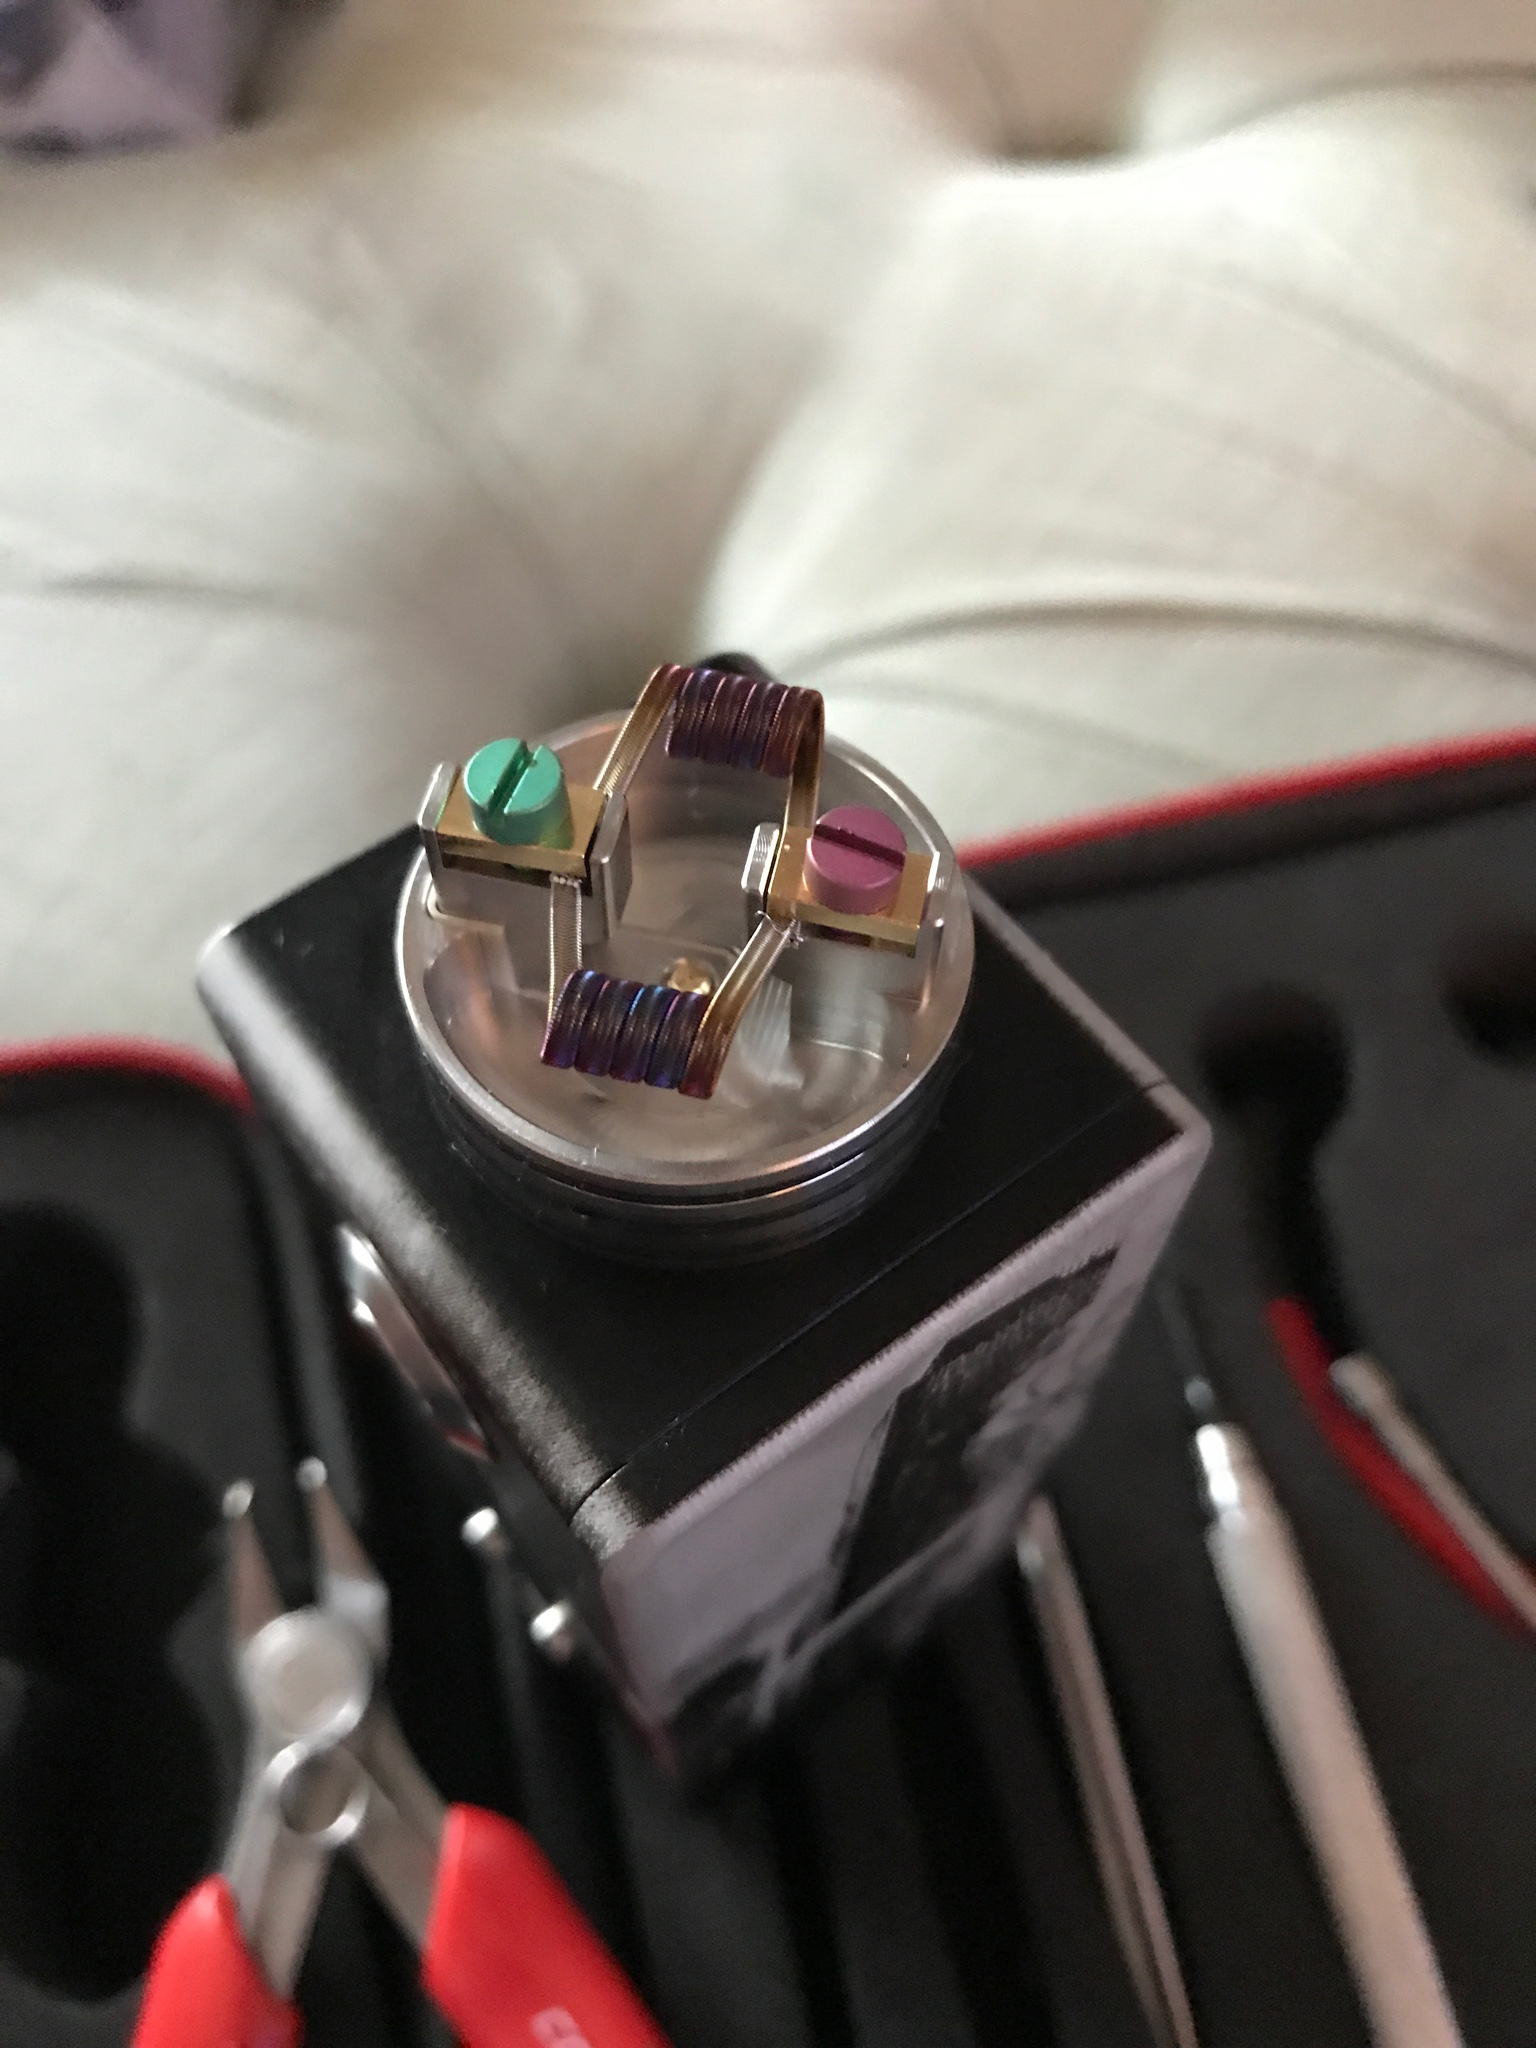 lipo 30 mm rda | Page 2 | Vaping Underground Forums - An